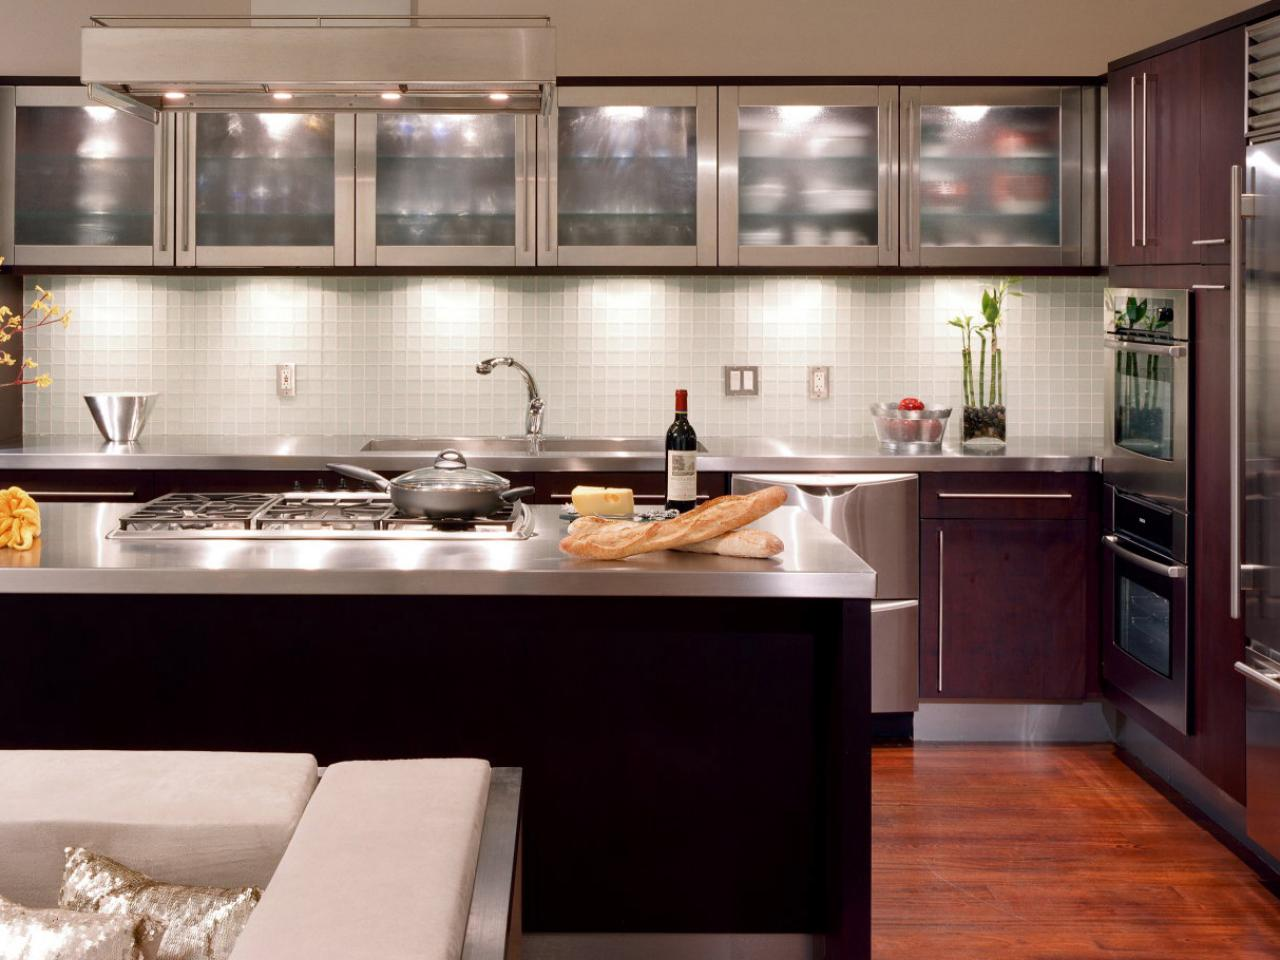 glass kitchen cabinet doors: pictures, options, tips & ideas | hgtv